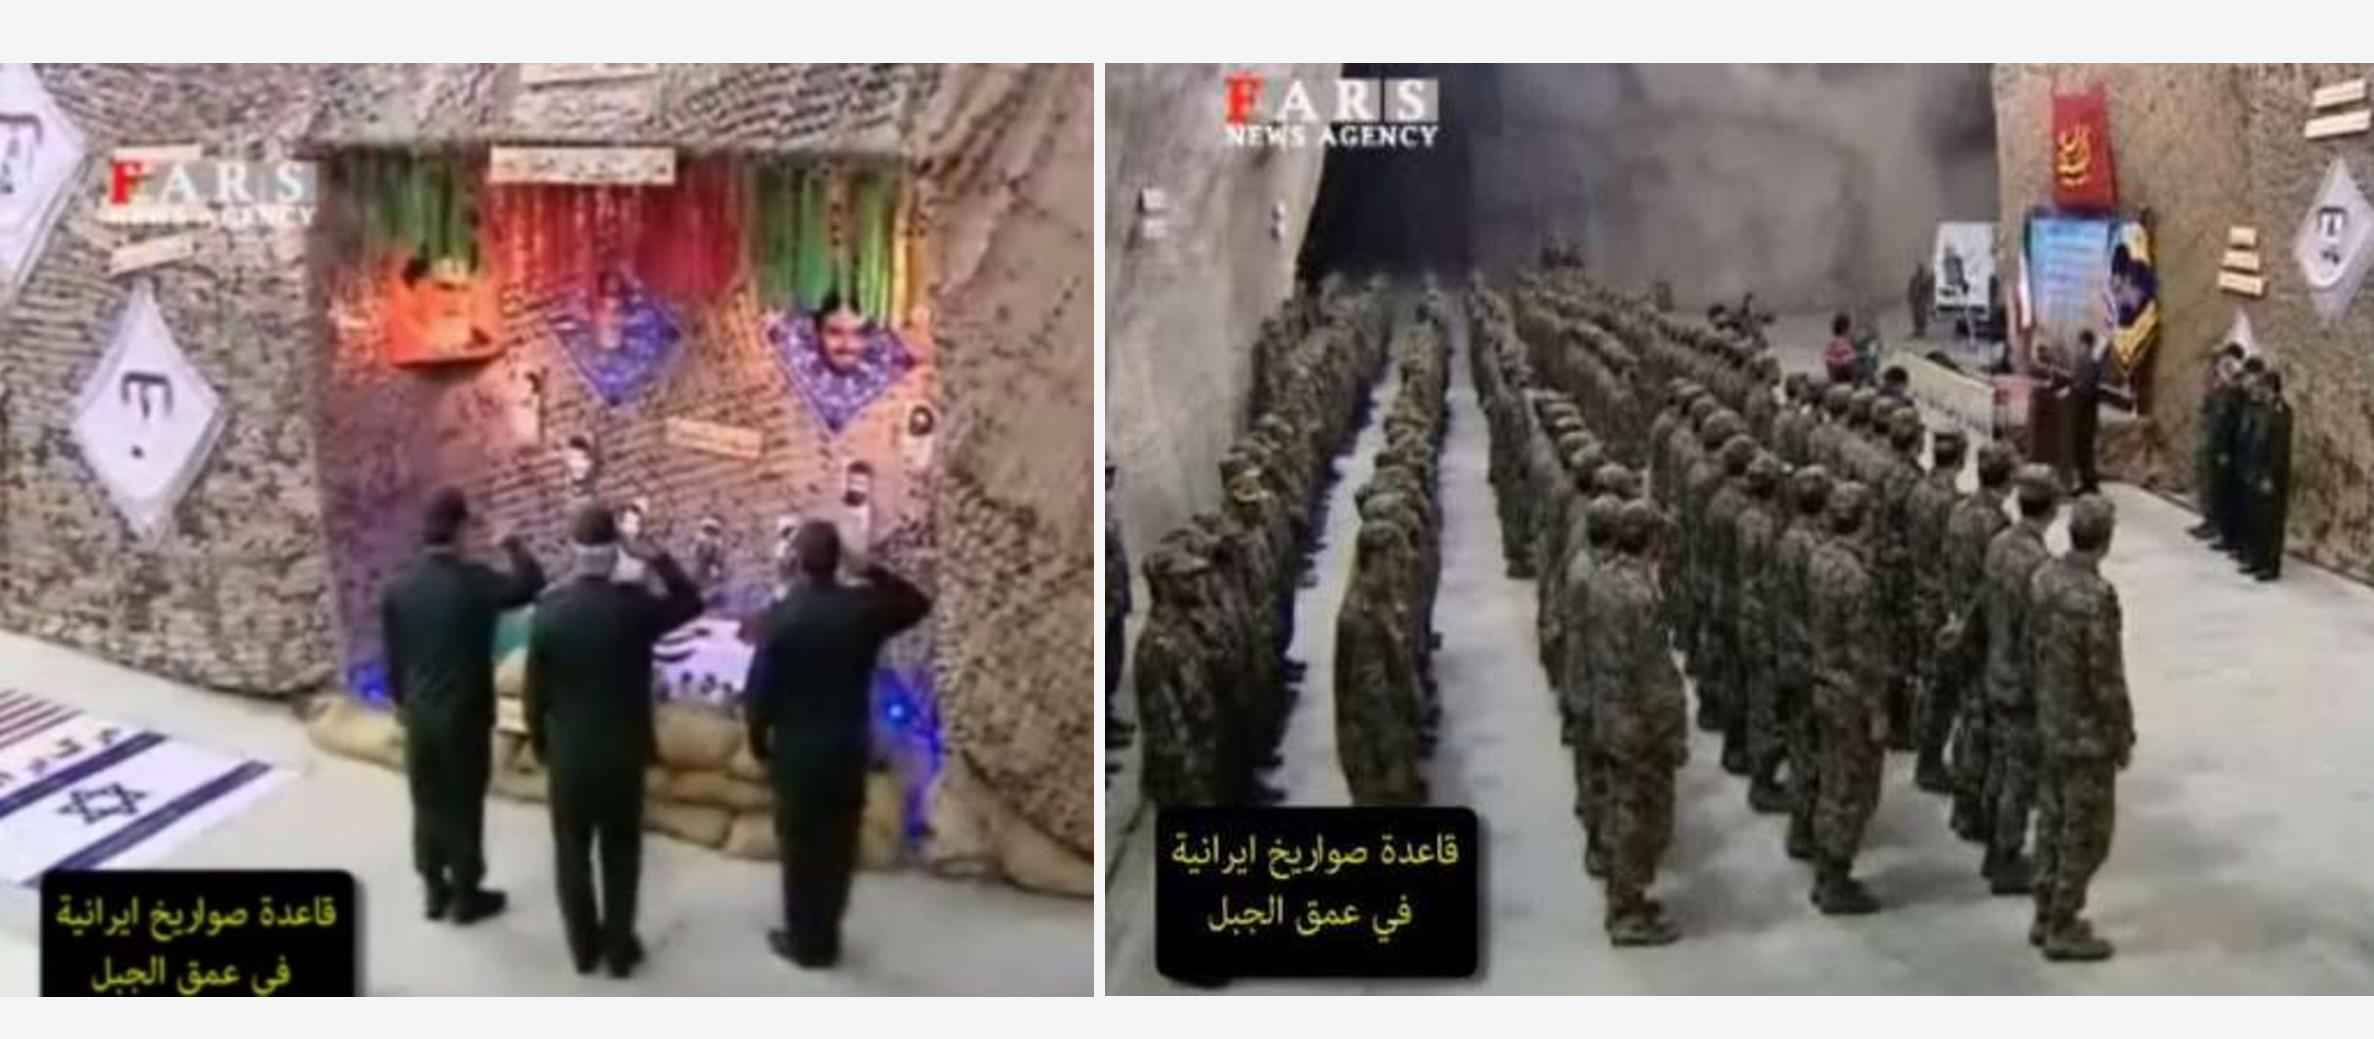 Iran shows off secret underground missile base – with flags of Israel and US on the floor